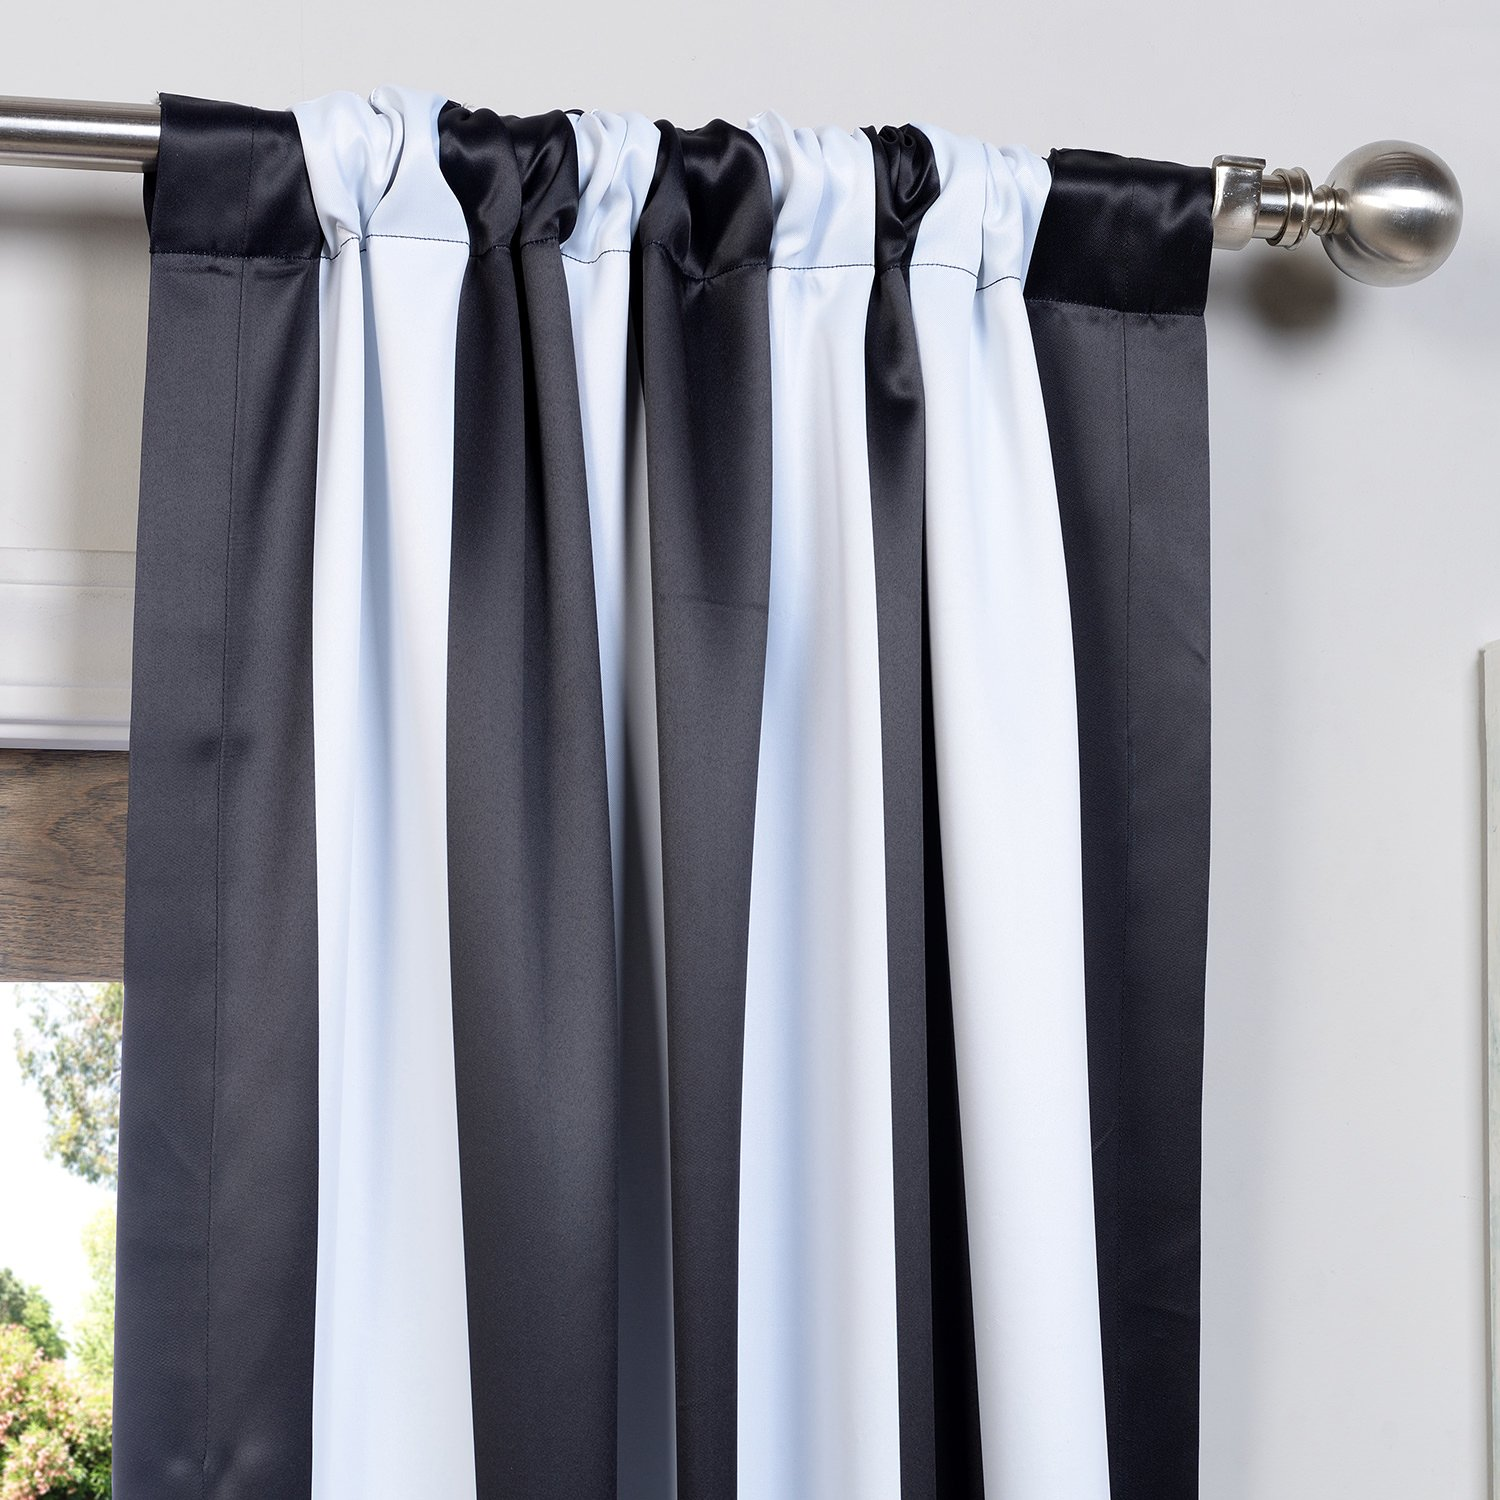 striped teal black awesome curtain full navy blackout yellow of large size curtains patterned white panels and grey